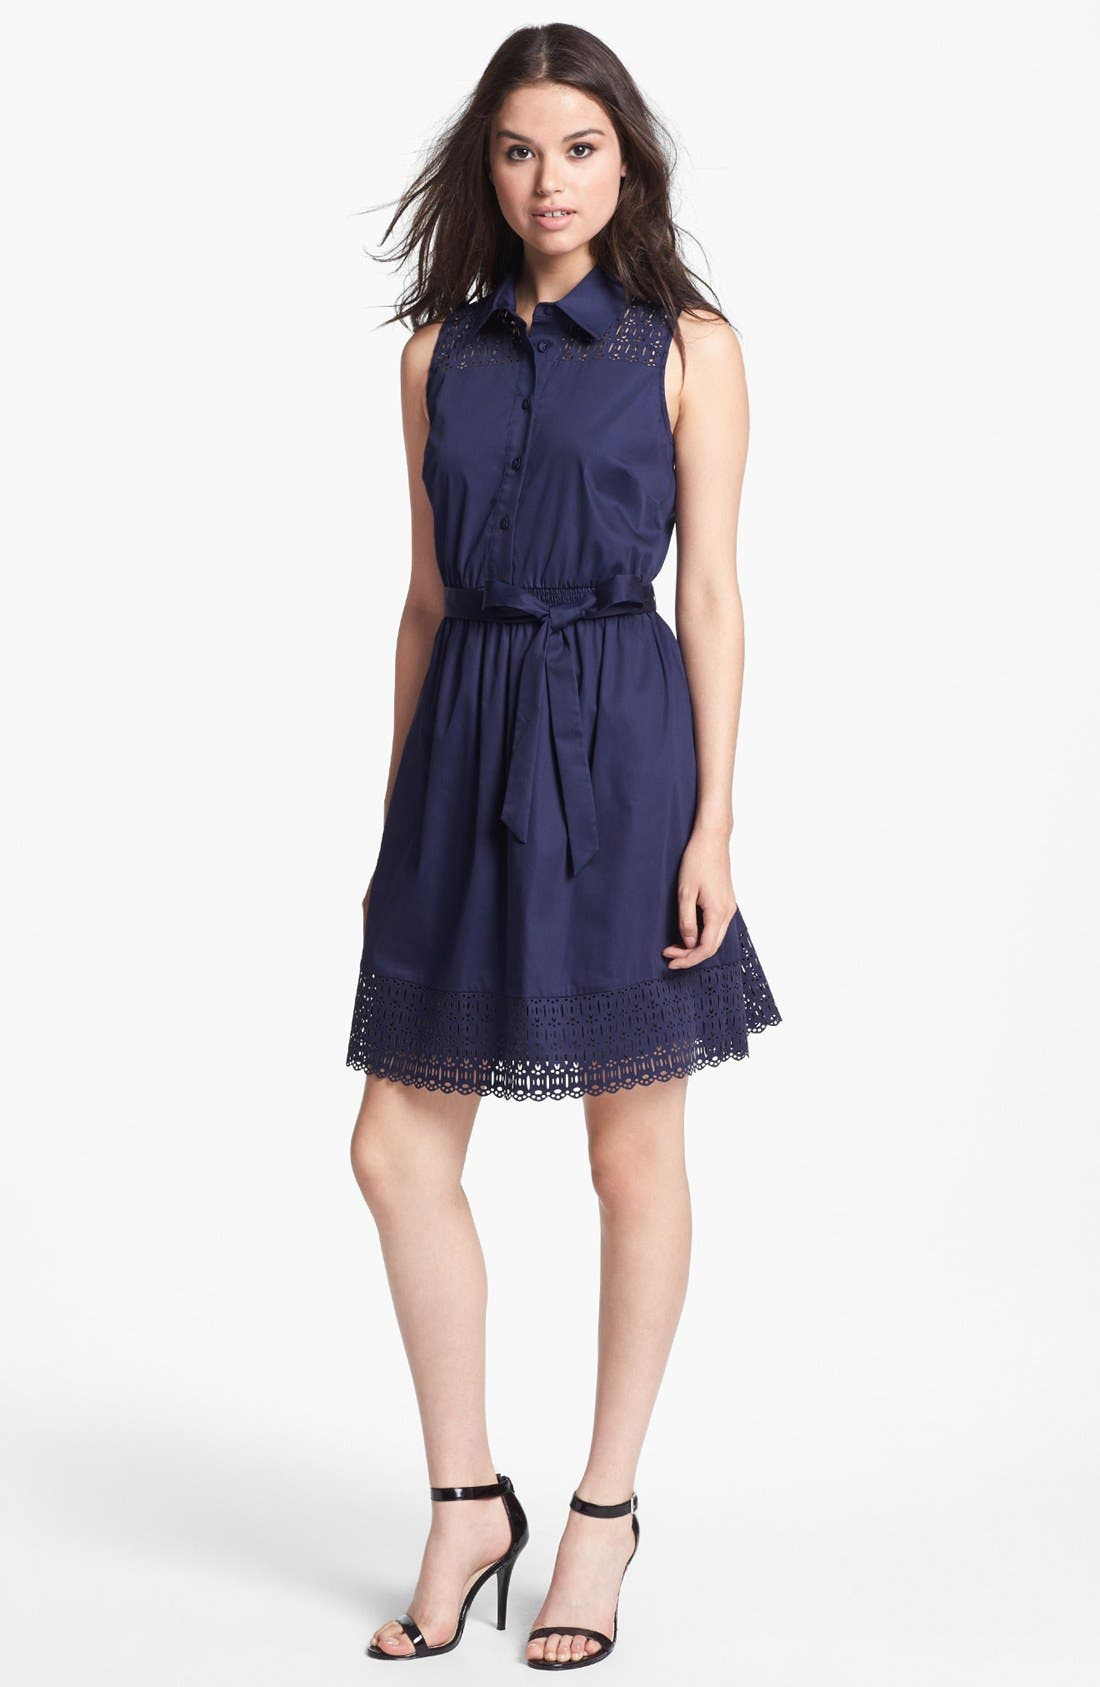 Alternate Image 1 Selected - Laundry by Shelli Segal Sleeveless Laser Cut Shirtdress (Petite)